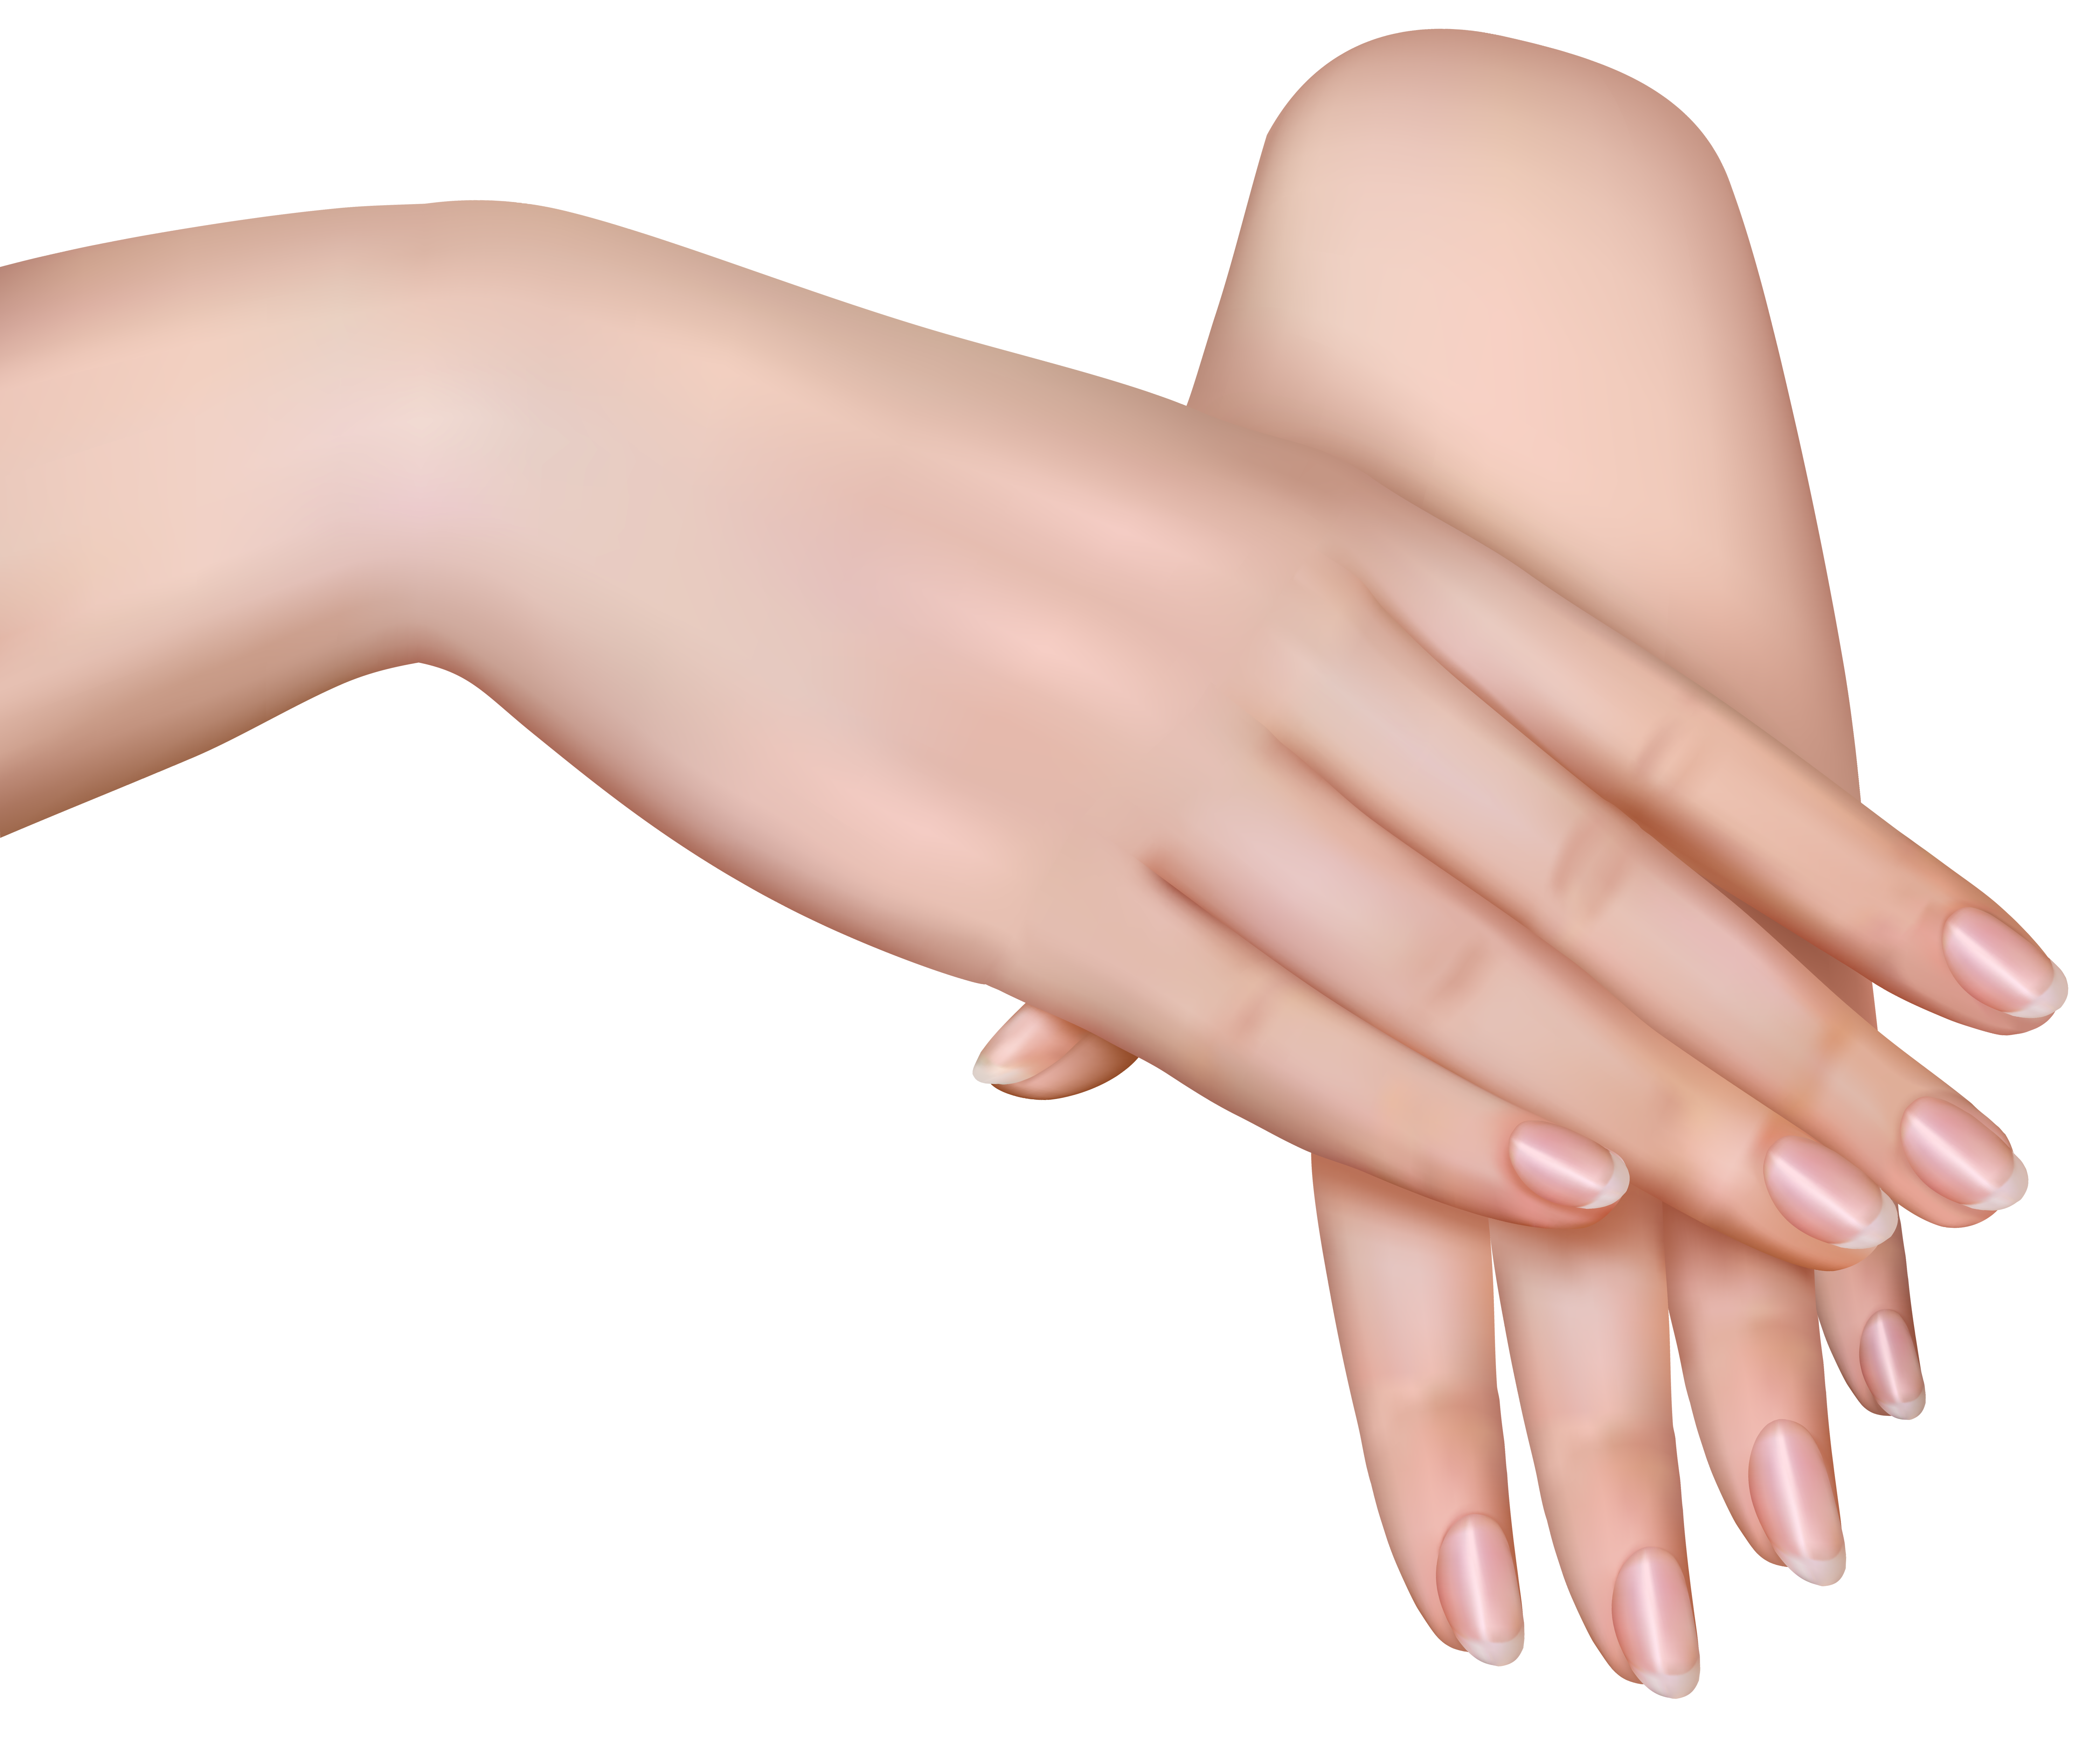 Manicure clipart transparent background. Female hands png image